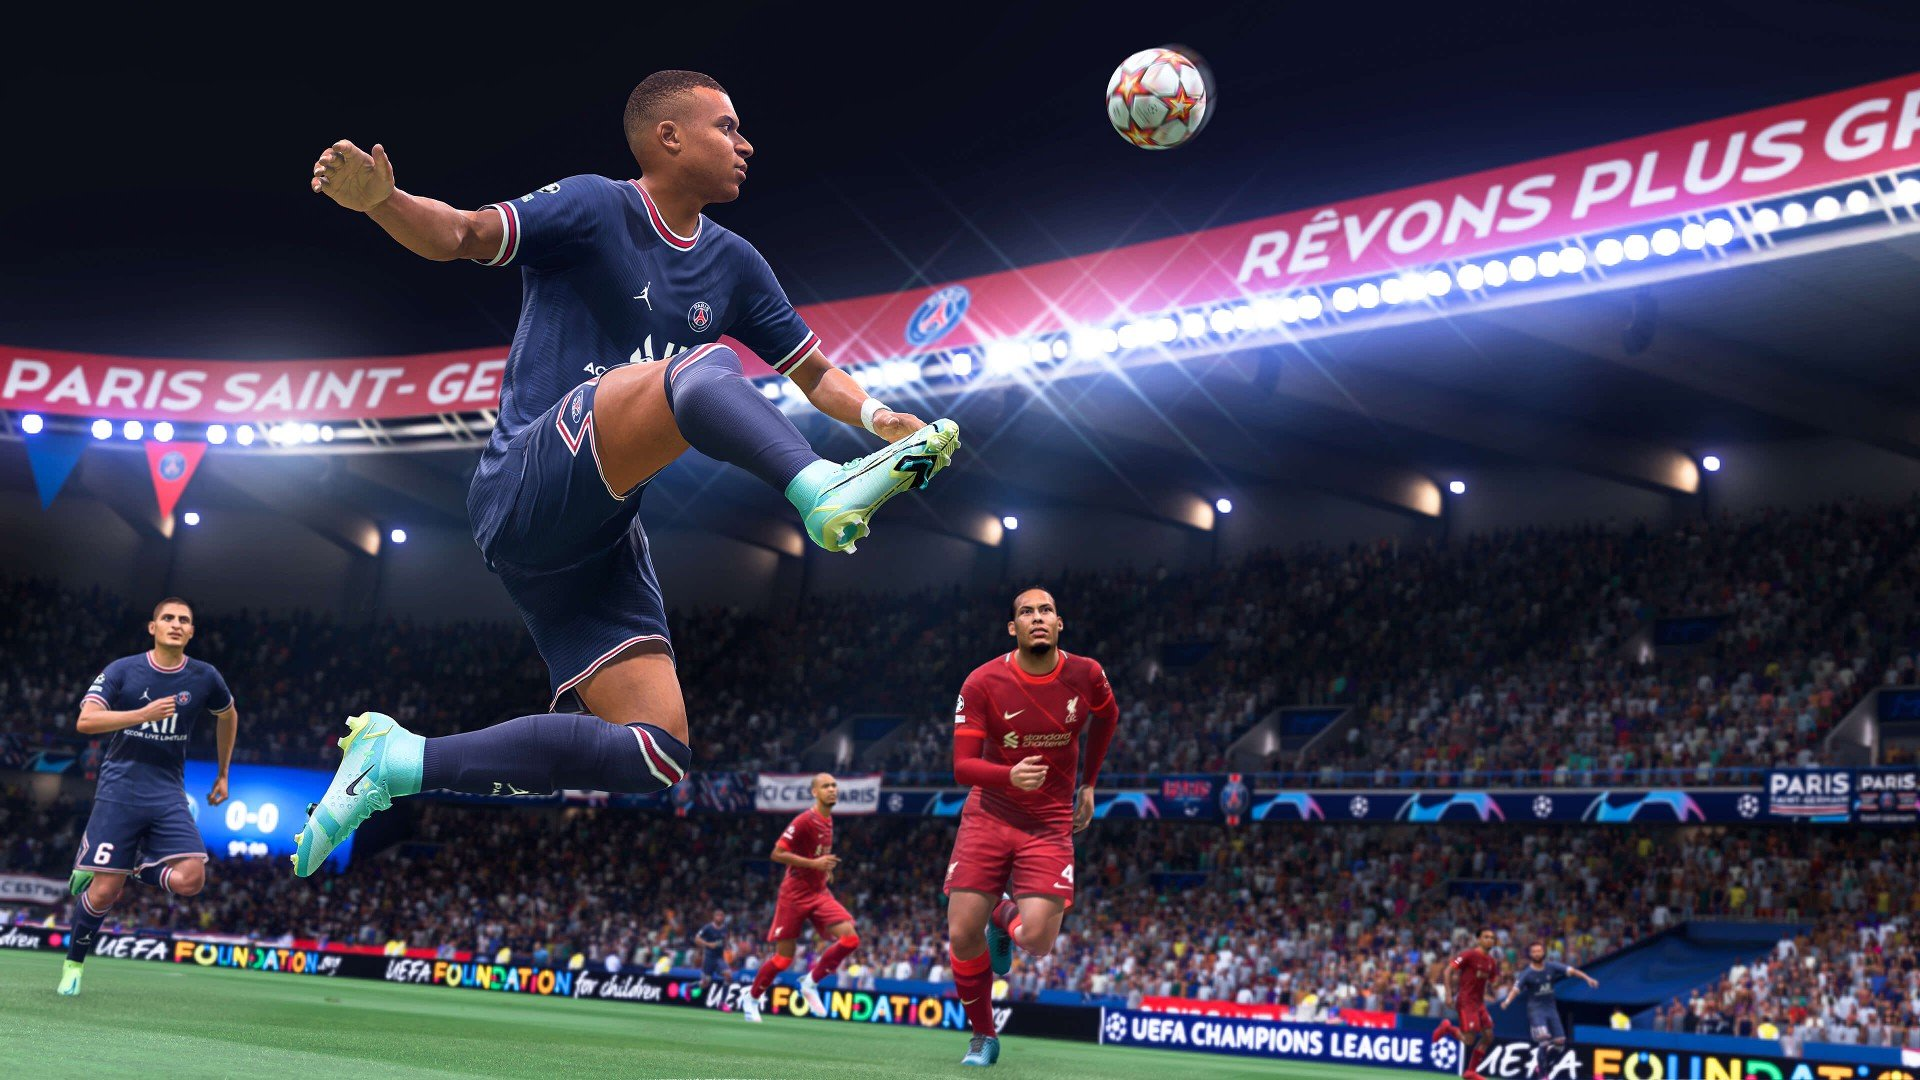 FIFA 22: This game is an absolute cheek!